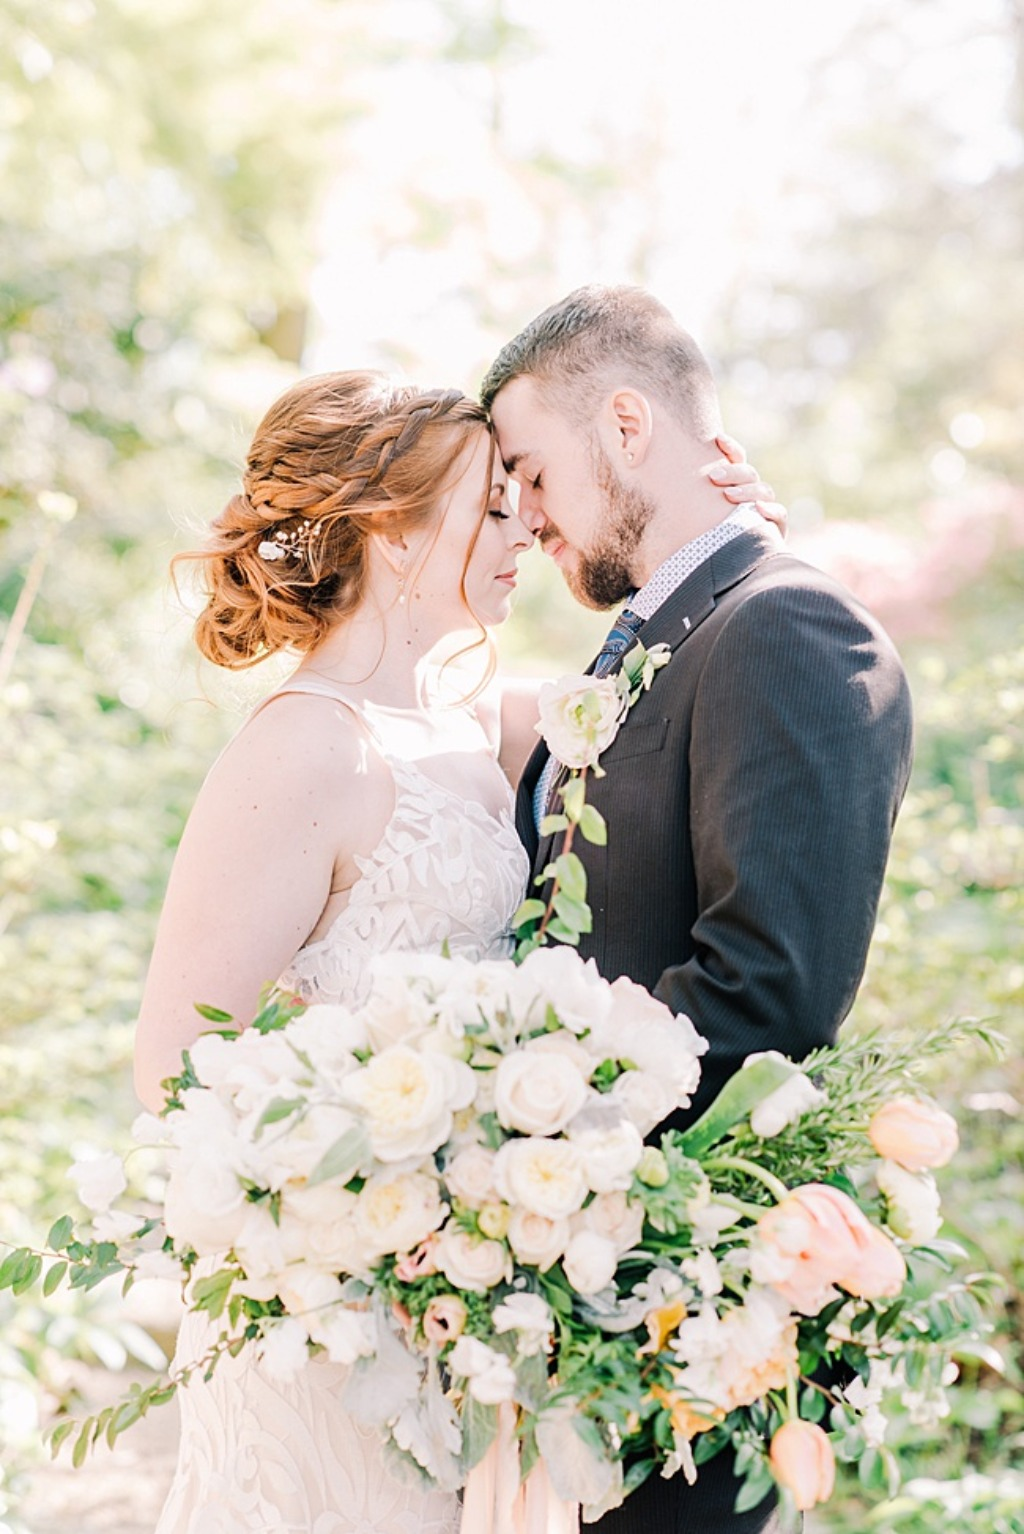 Springtime garden wedding in Maryland featuring rose gold bridal headpiece and earrings by J'Adorn Designs bridal jewelry.